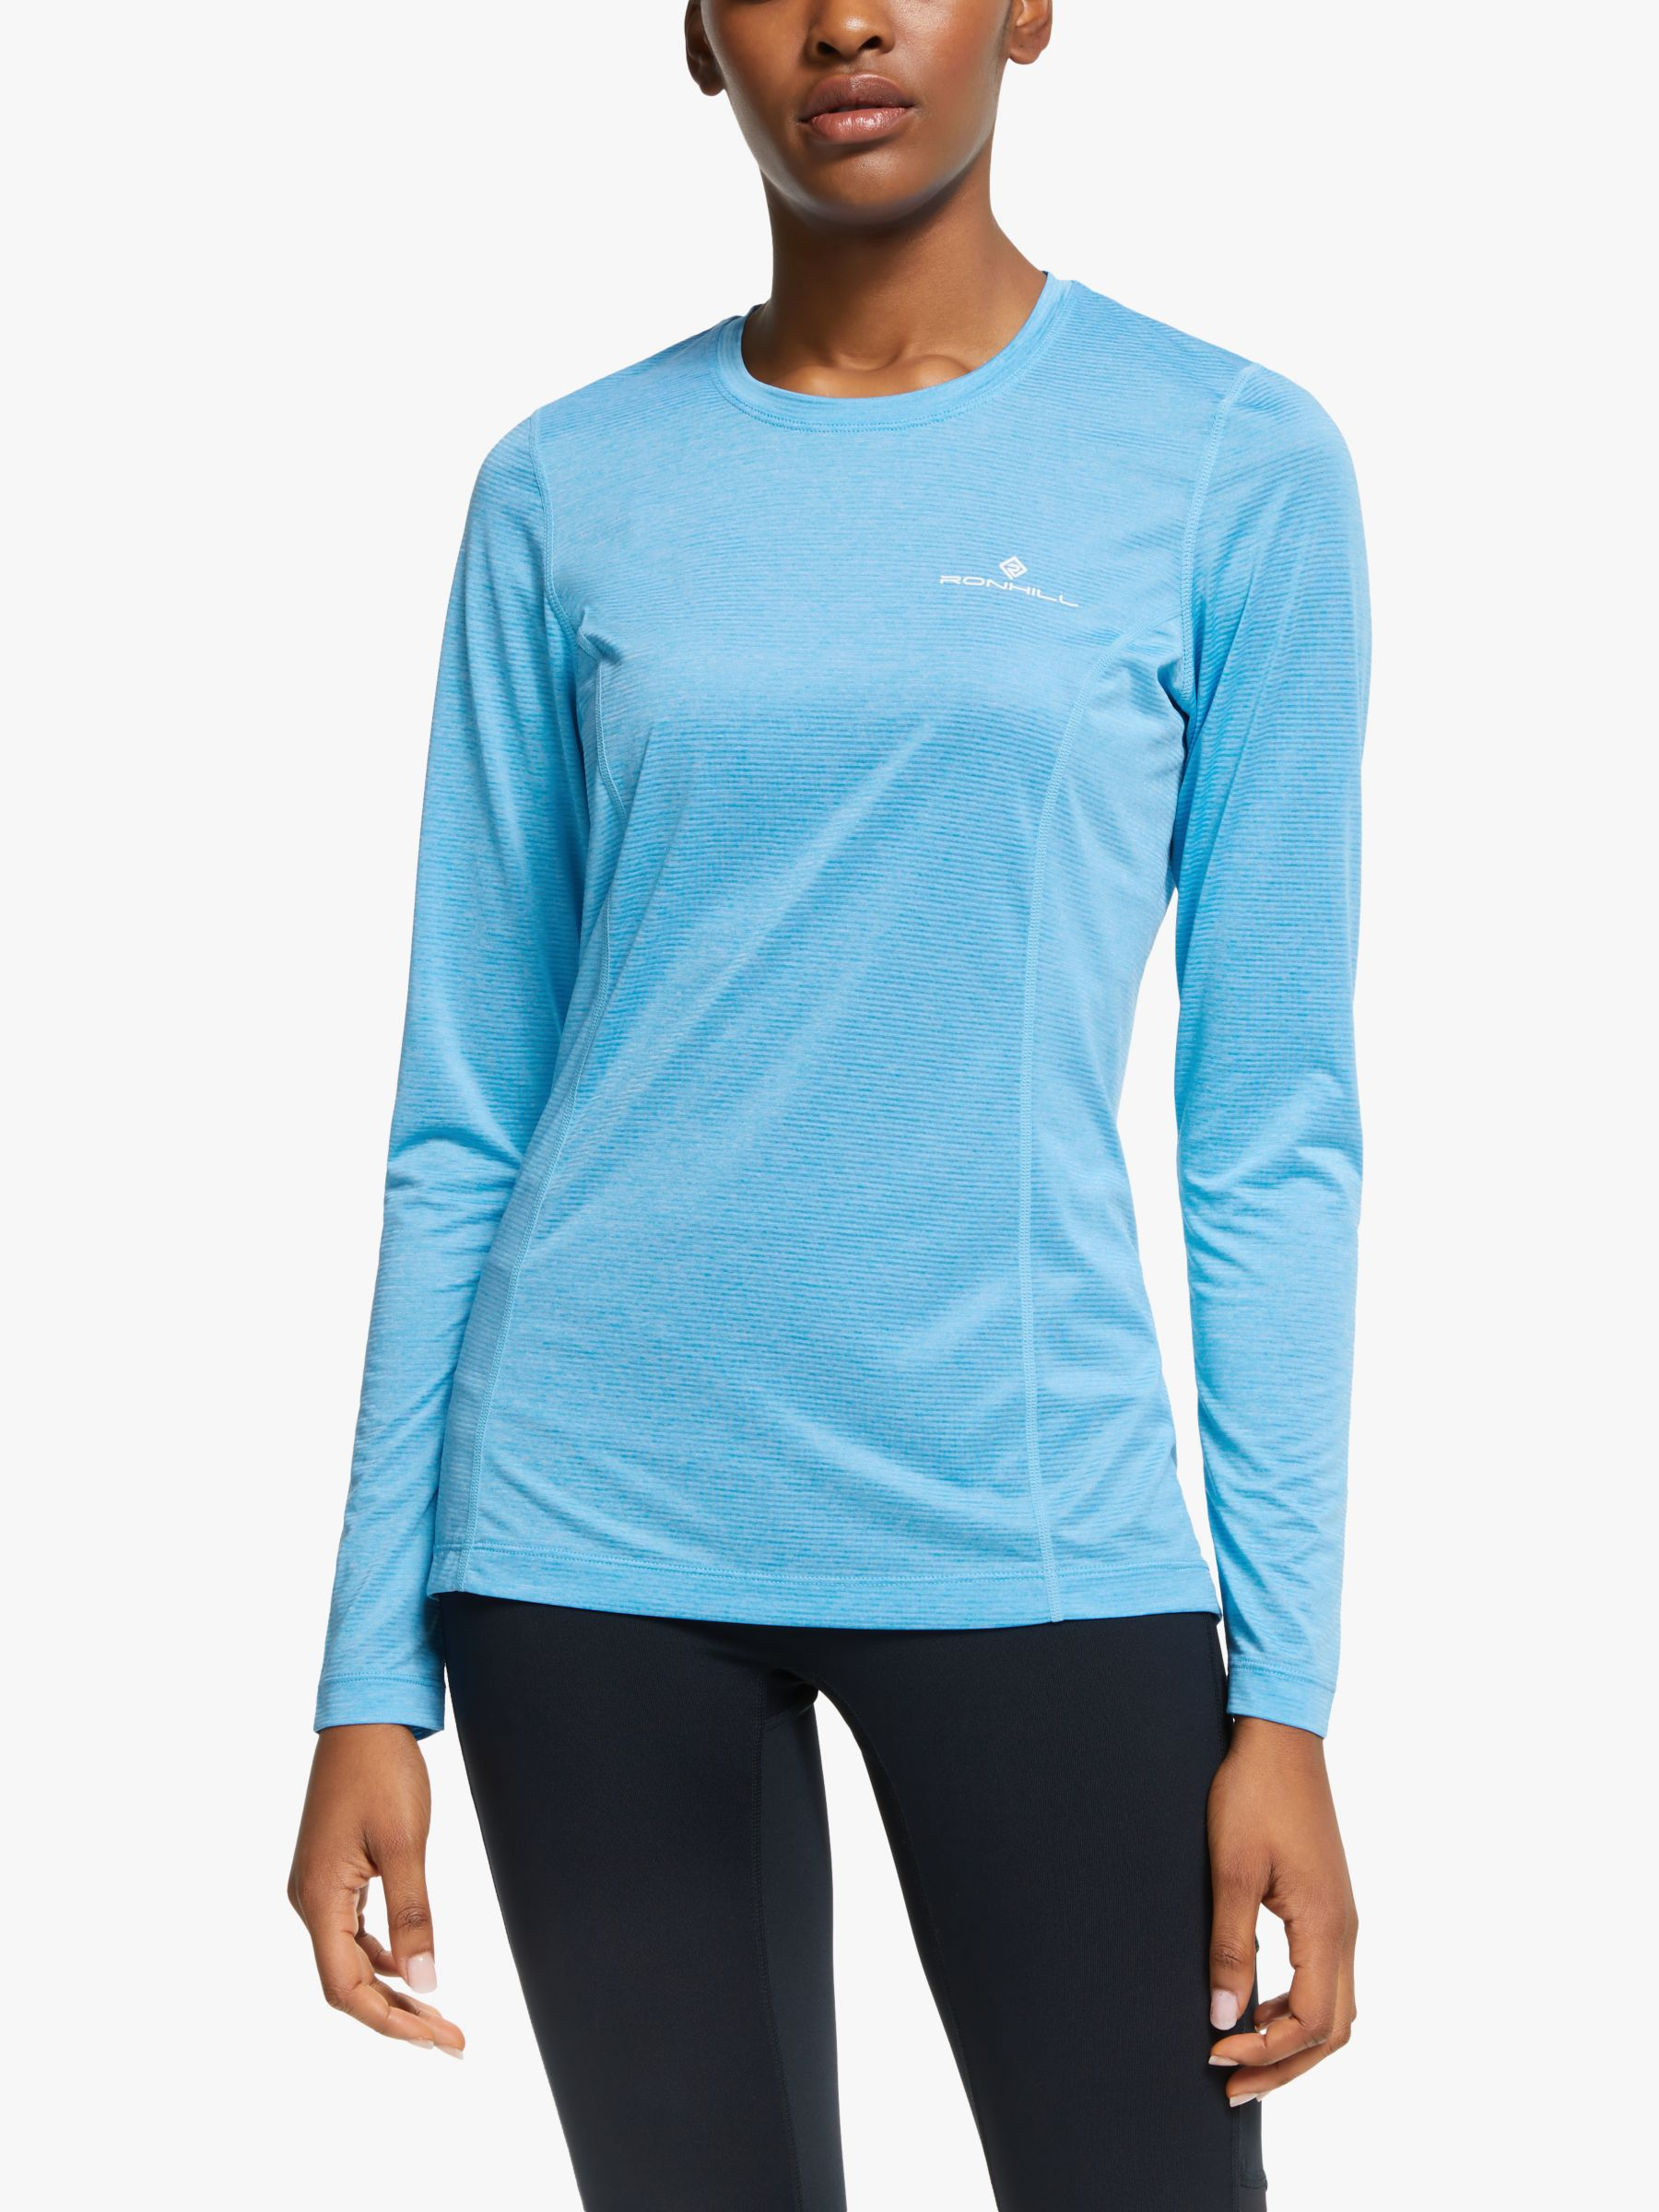 Ronhill Ronhill Stride Long Sleeve Running Top, Sky Blue Marl